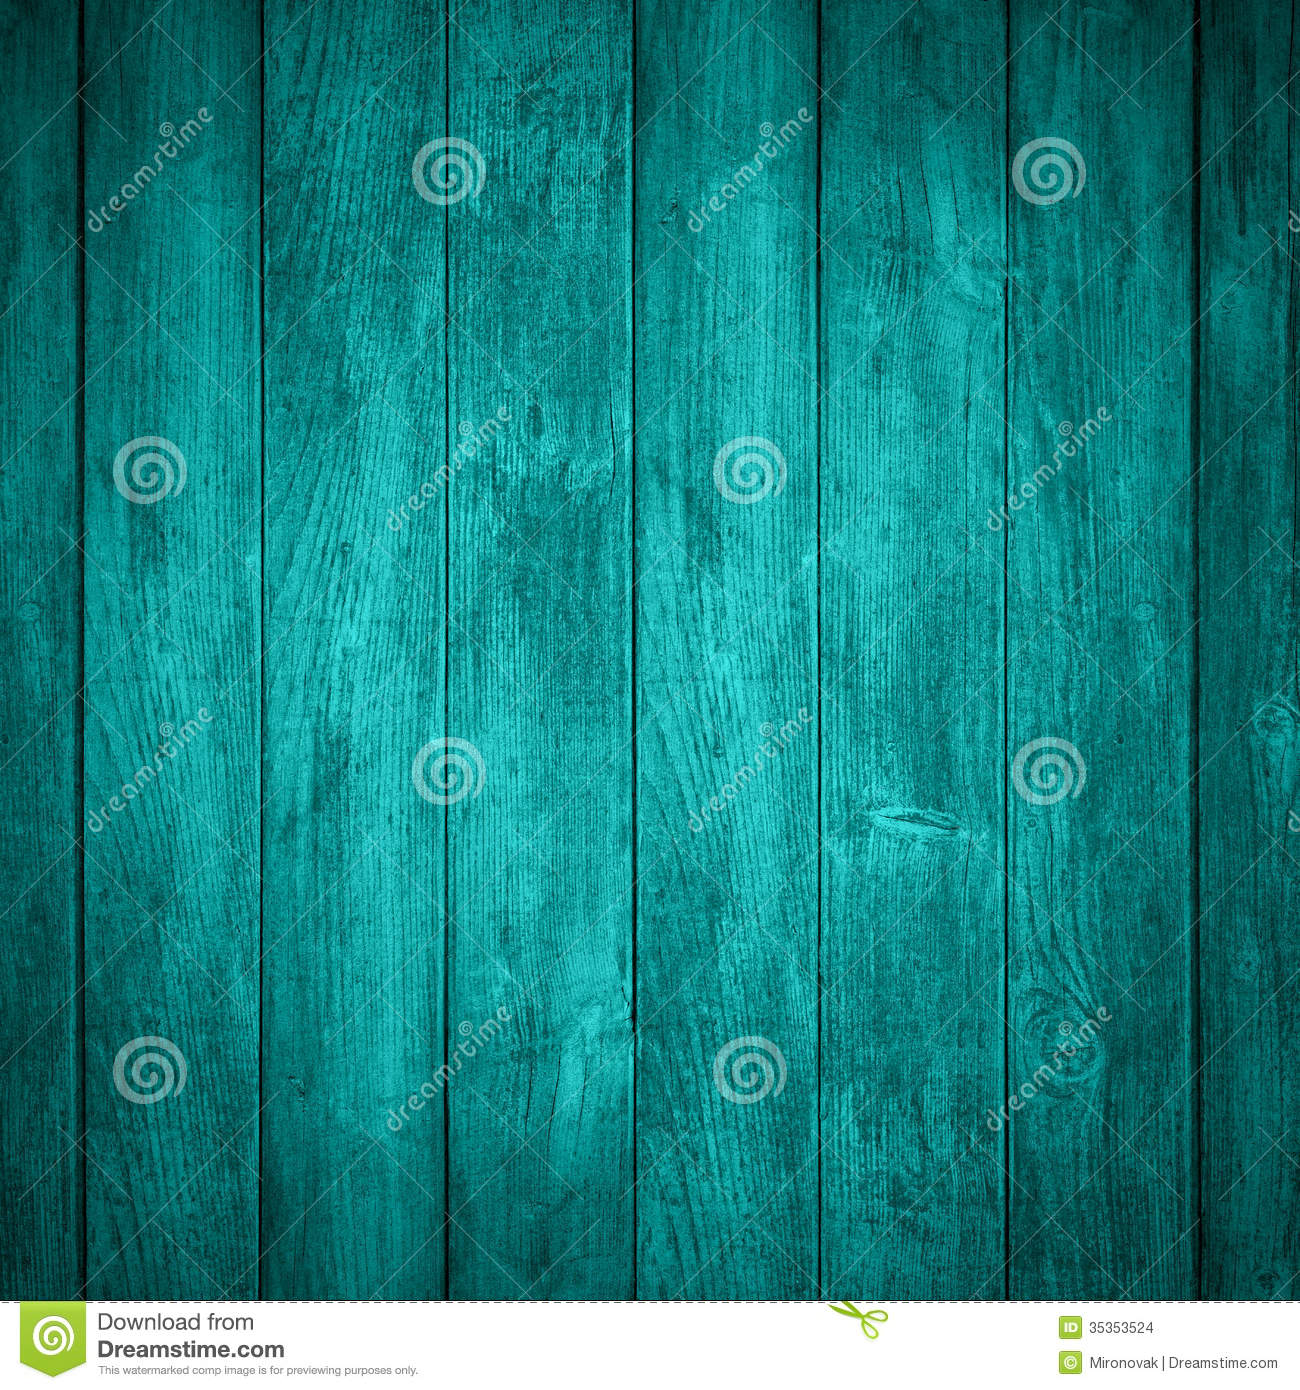 Turquoise Wooden Background Stock Photo Image 35353524